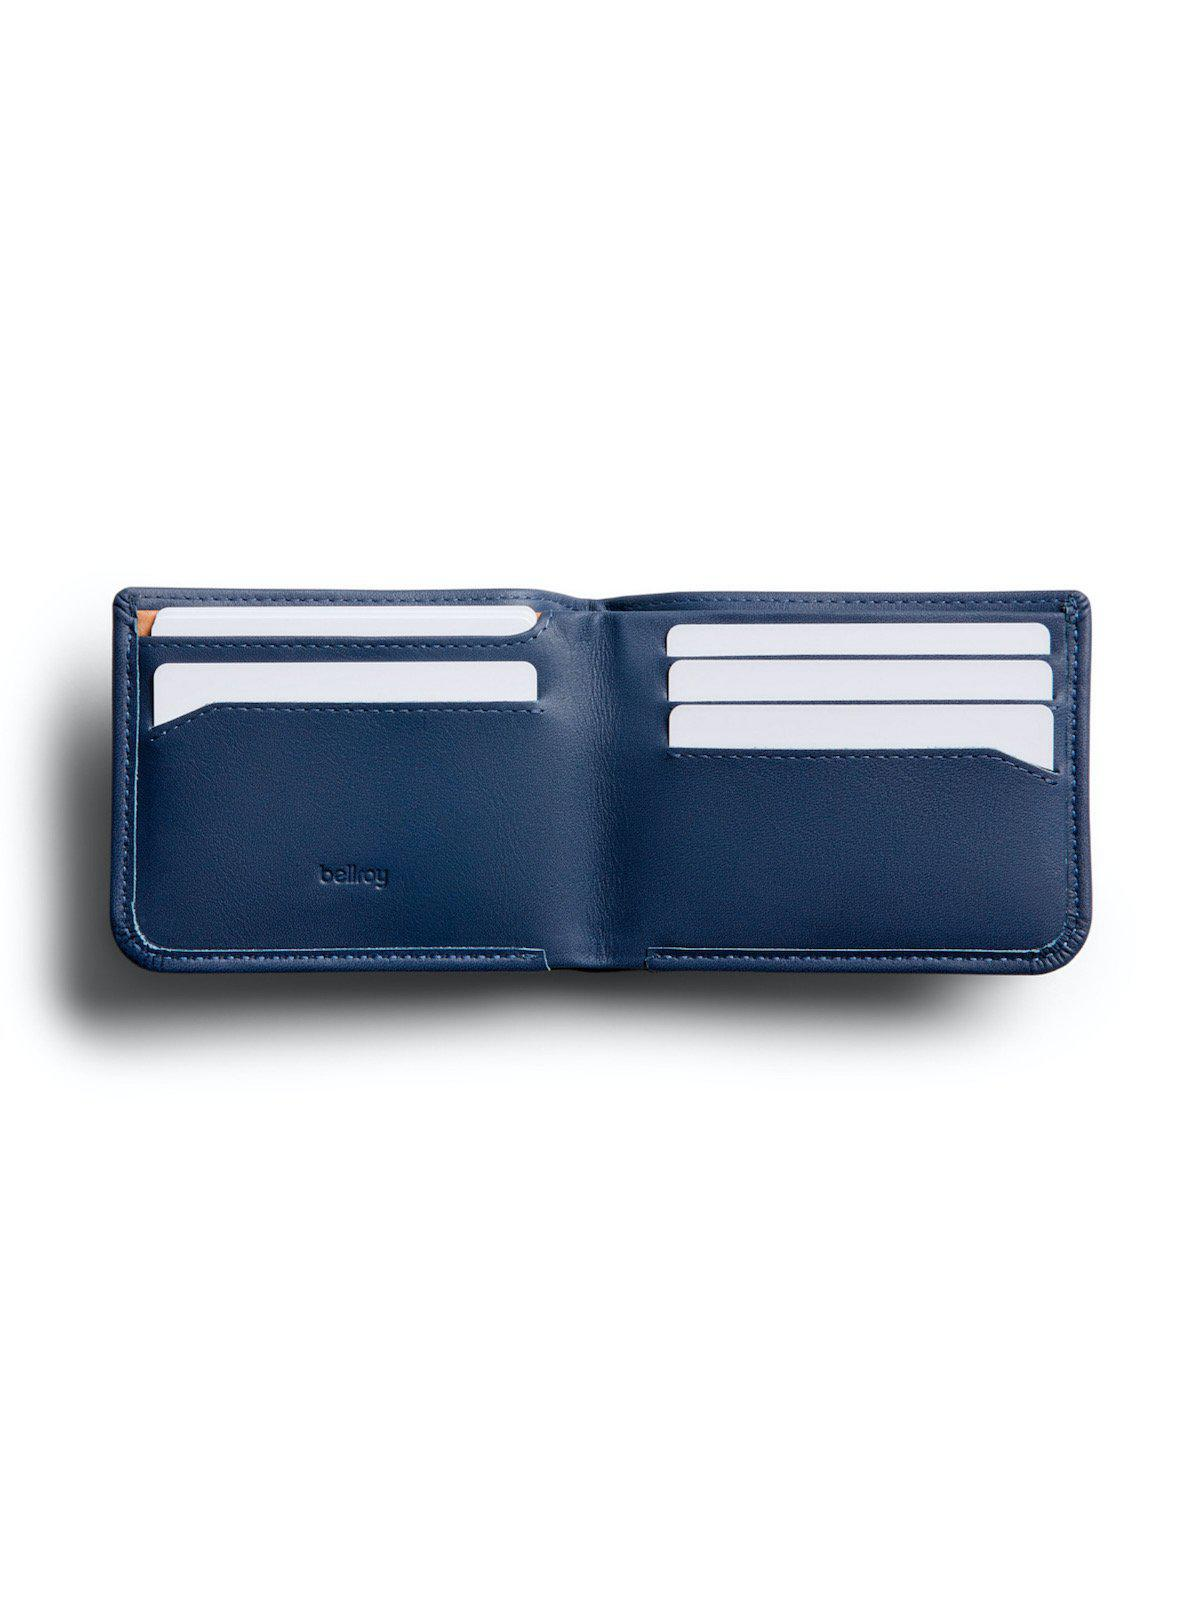 Bellroy Hide and Seek Wallet Marine Blue RFID